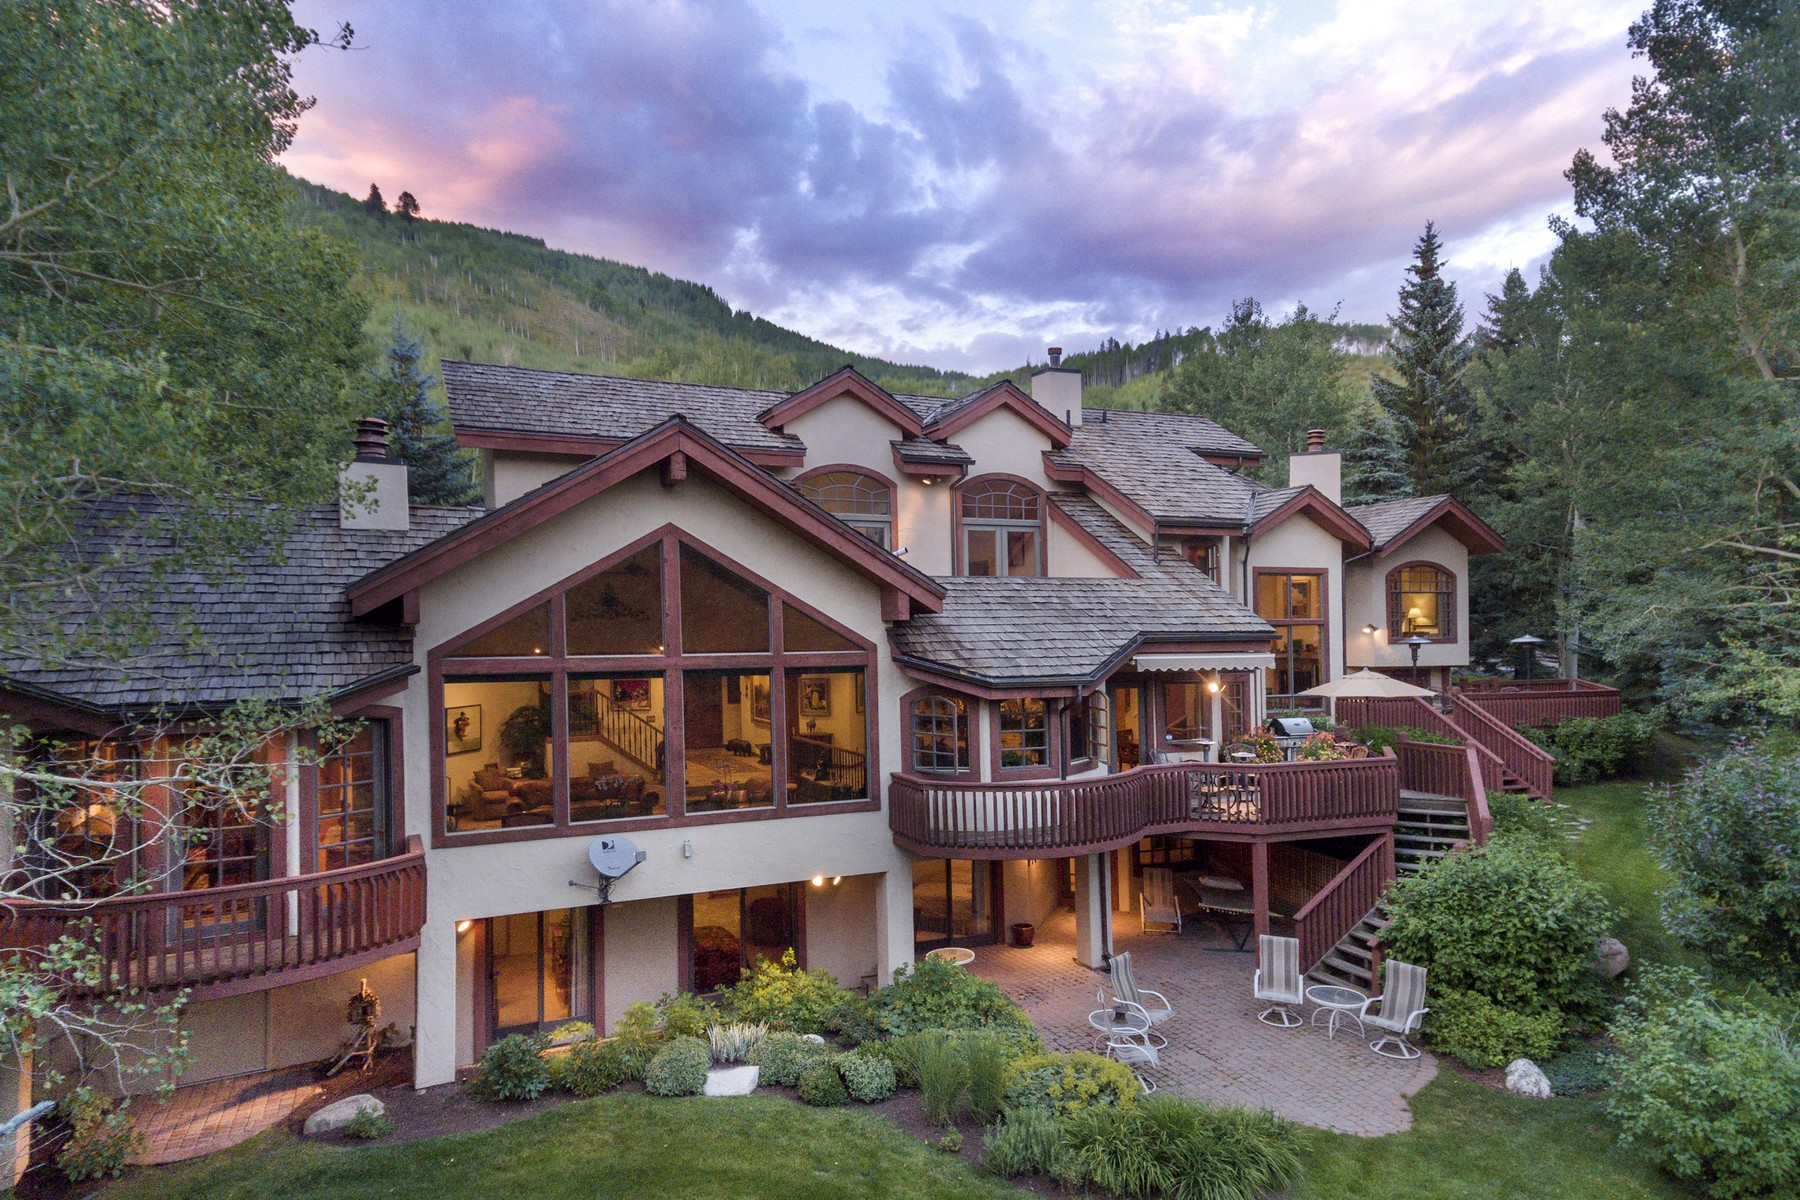 Property for Active at An Alpine Oasis with Vail Mountain Views 781 Potato Patch Dr Vail, Colorado 81657 United States